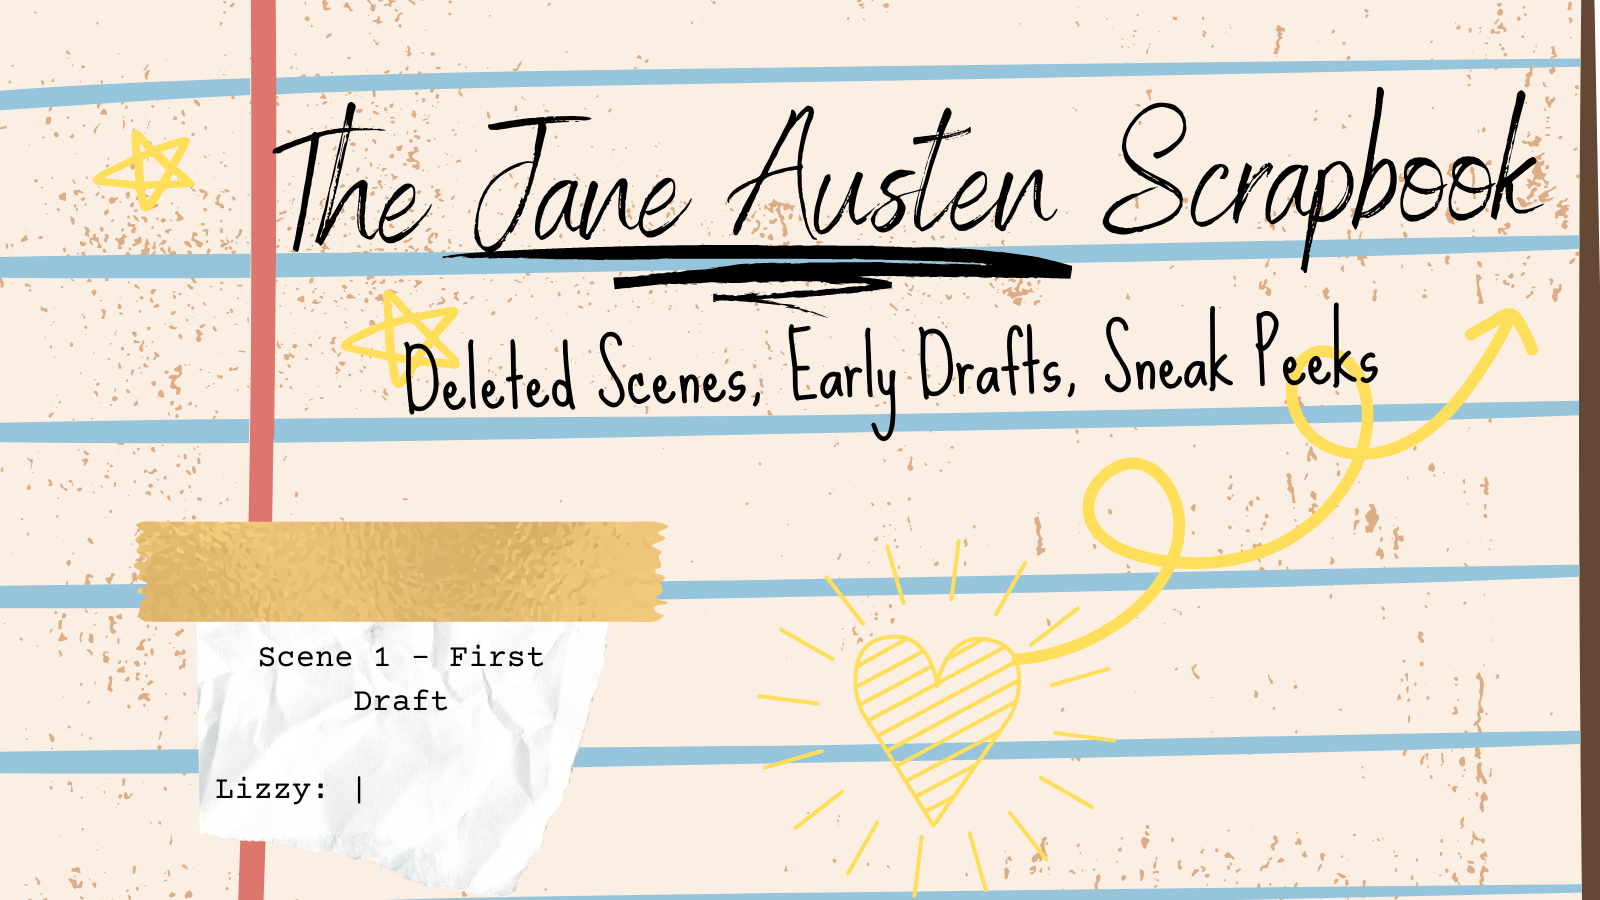 Logo that says The Jane Austen Scrapbook: Deleted Scenes, Early Drafts, Sneak Peeks. It appears on lined paper with doodles of hearts and stars.